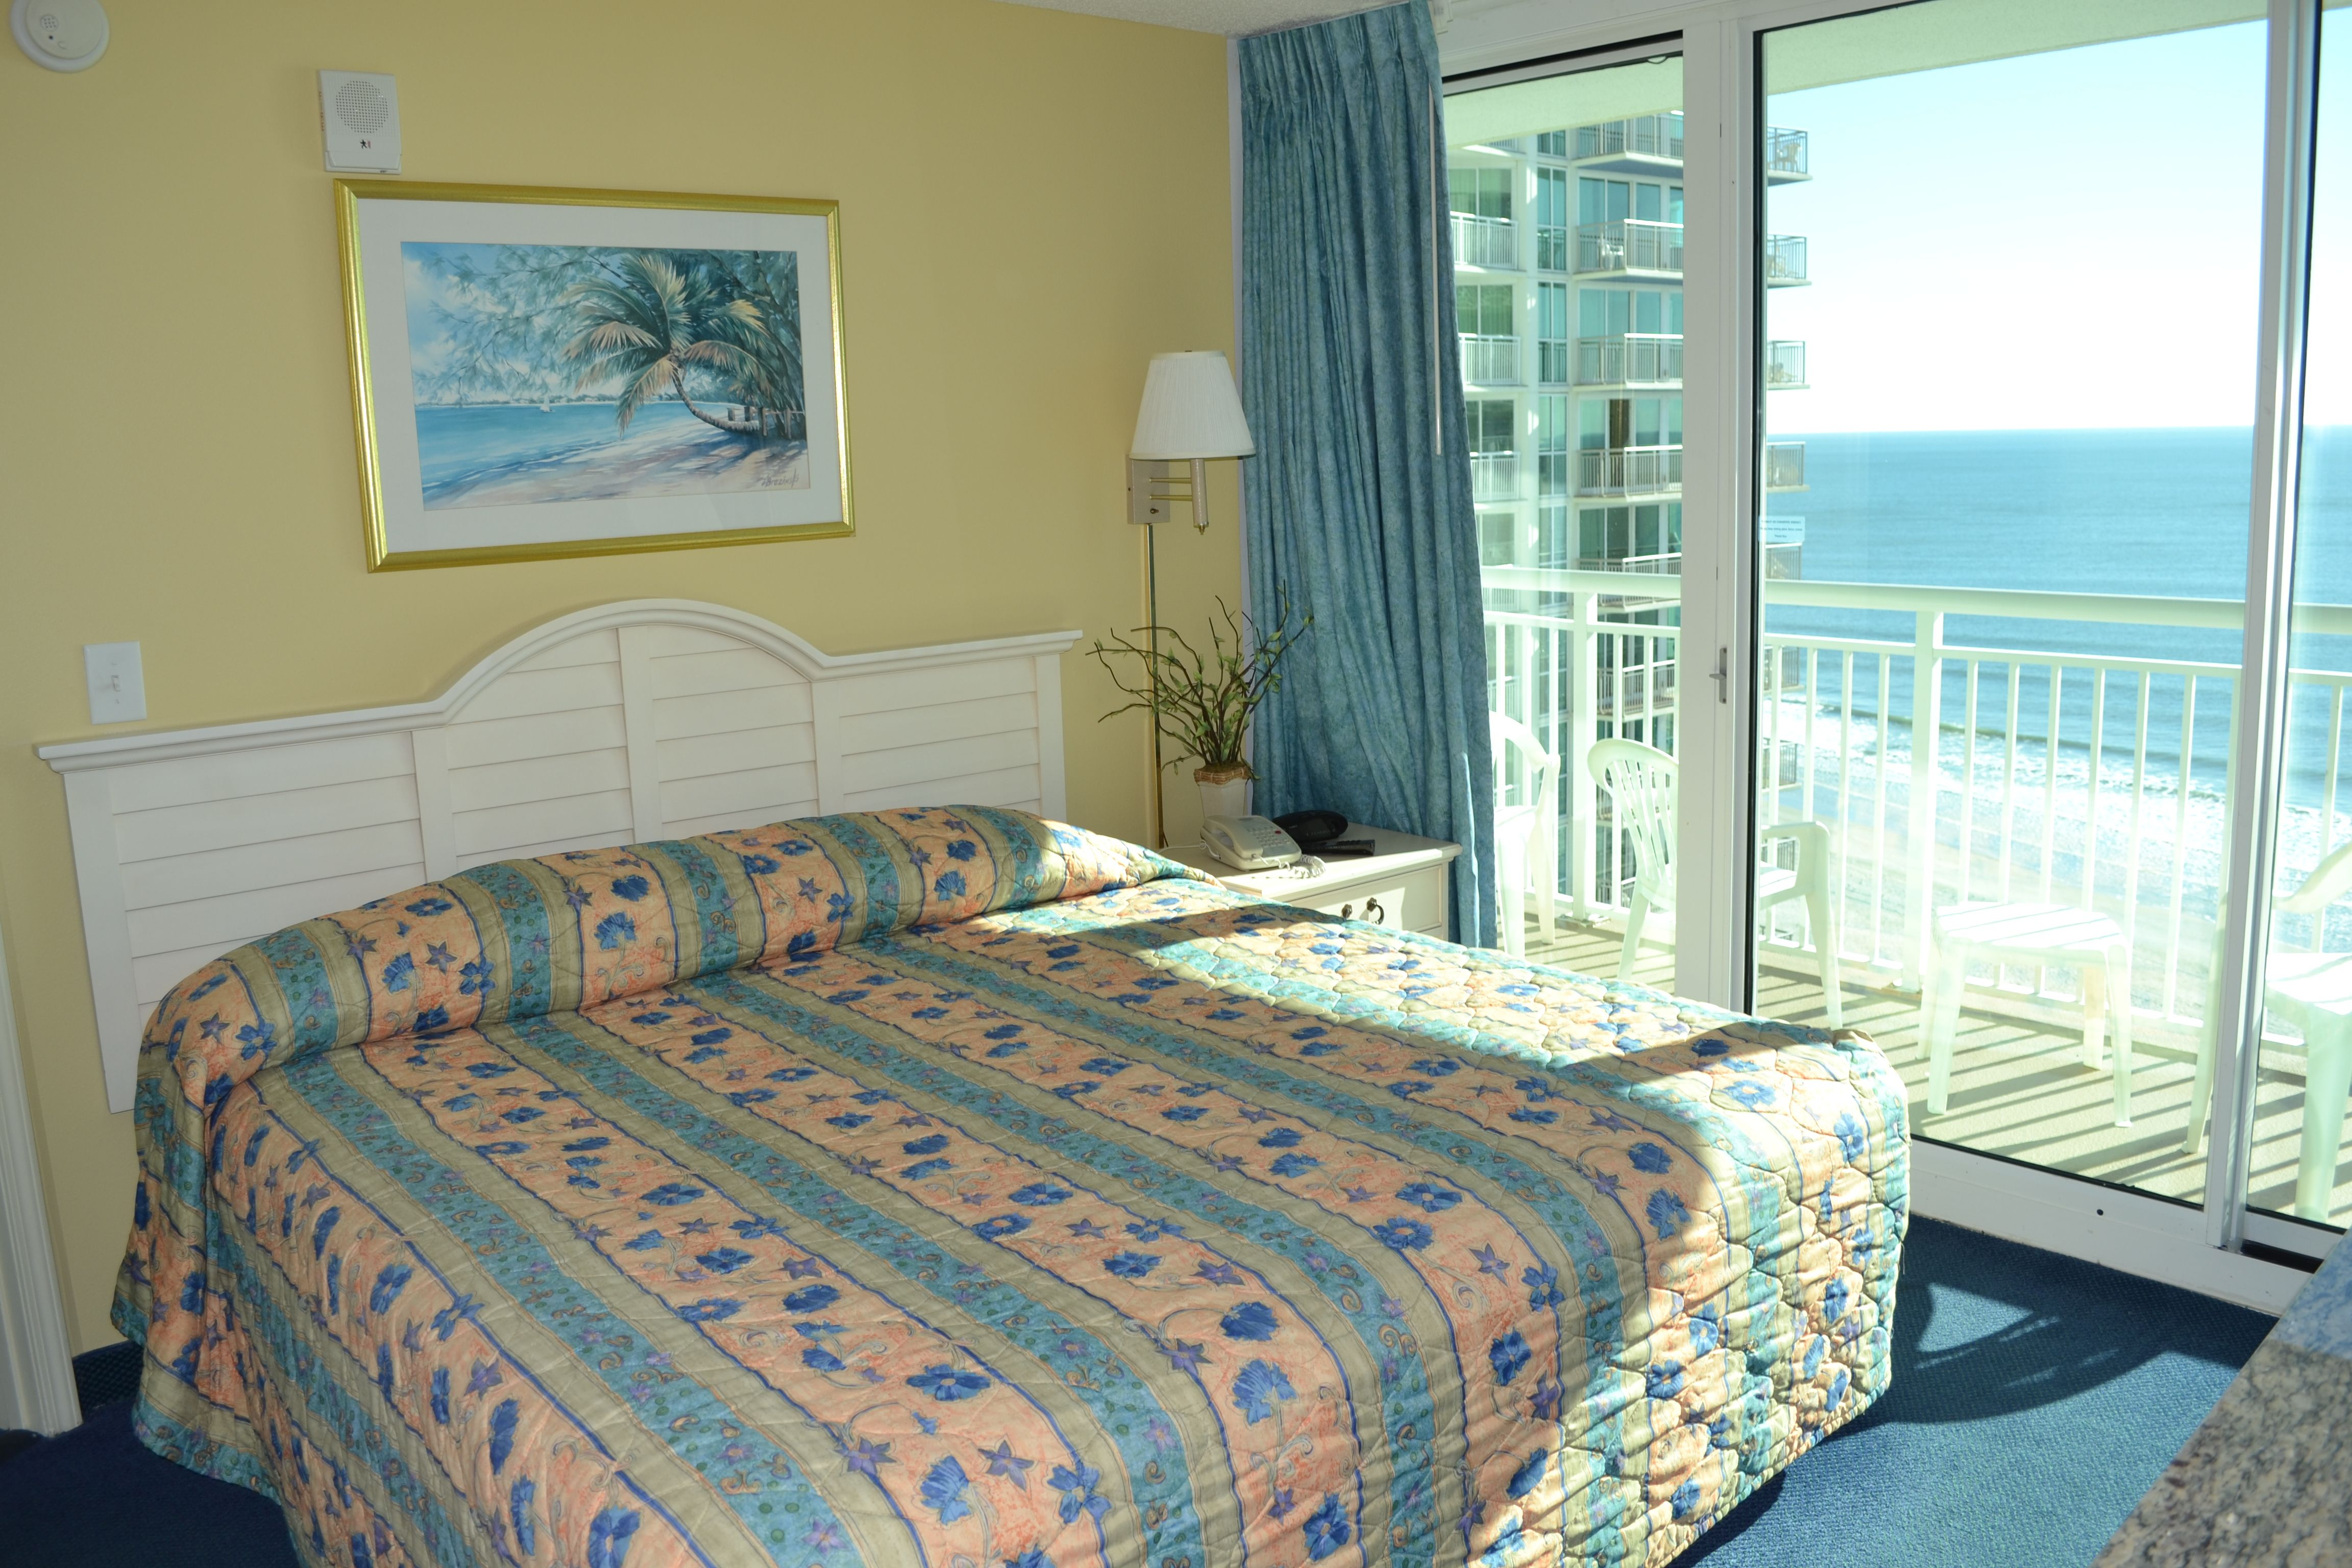 Enjoy your stay in our comfortable Avista Resort http